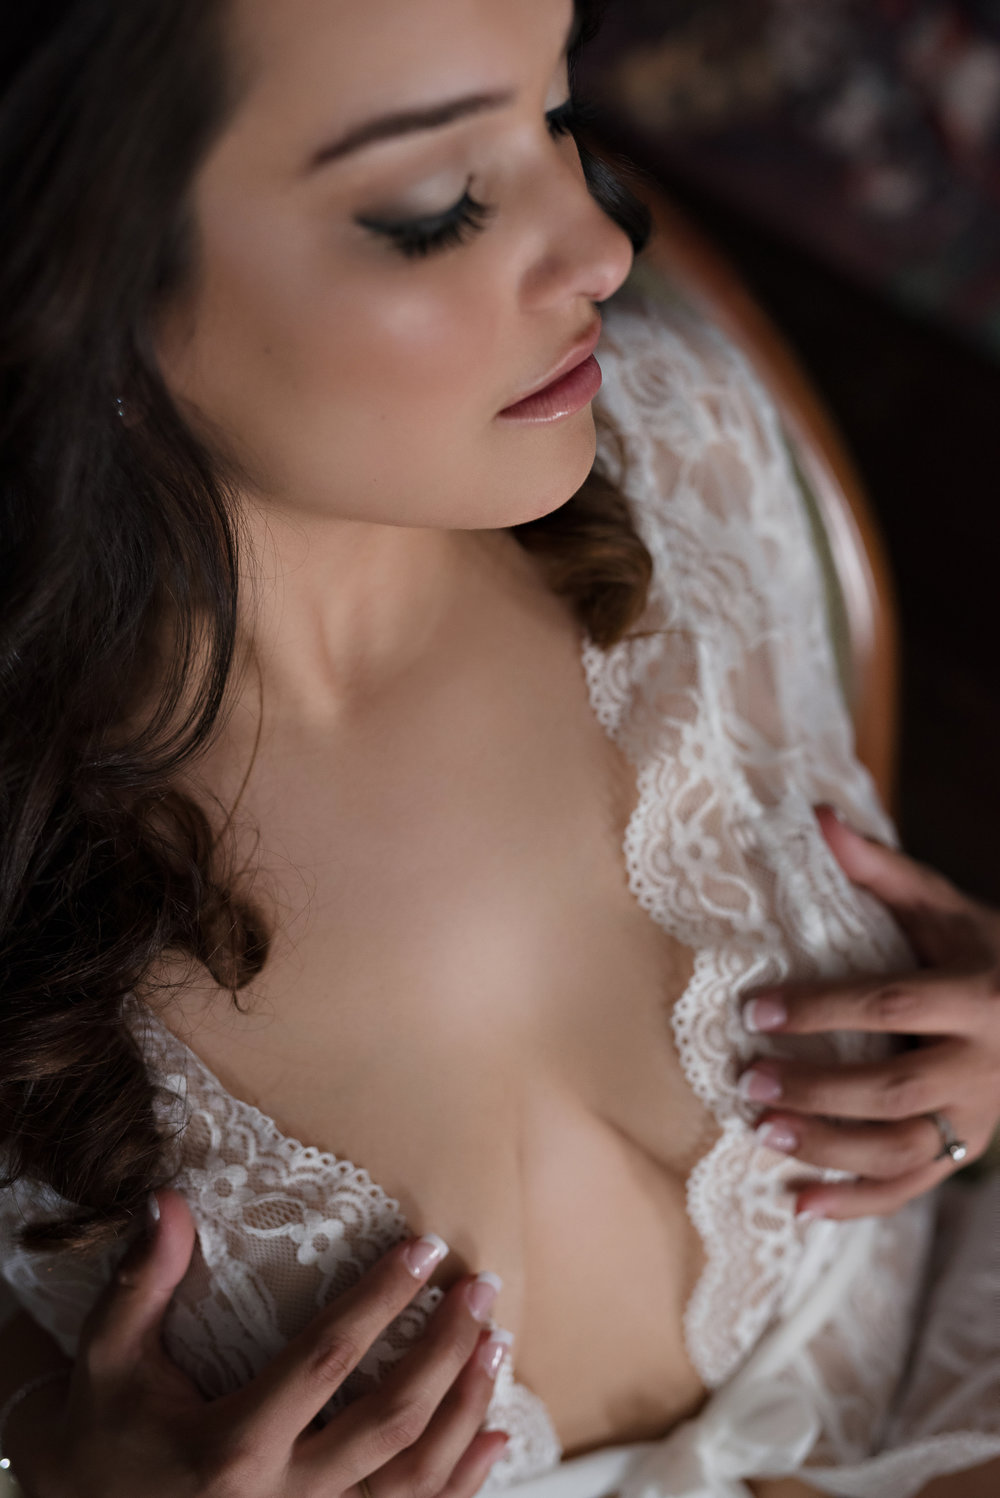 denver-bridal-boudoir-photographer-77.jpg